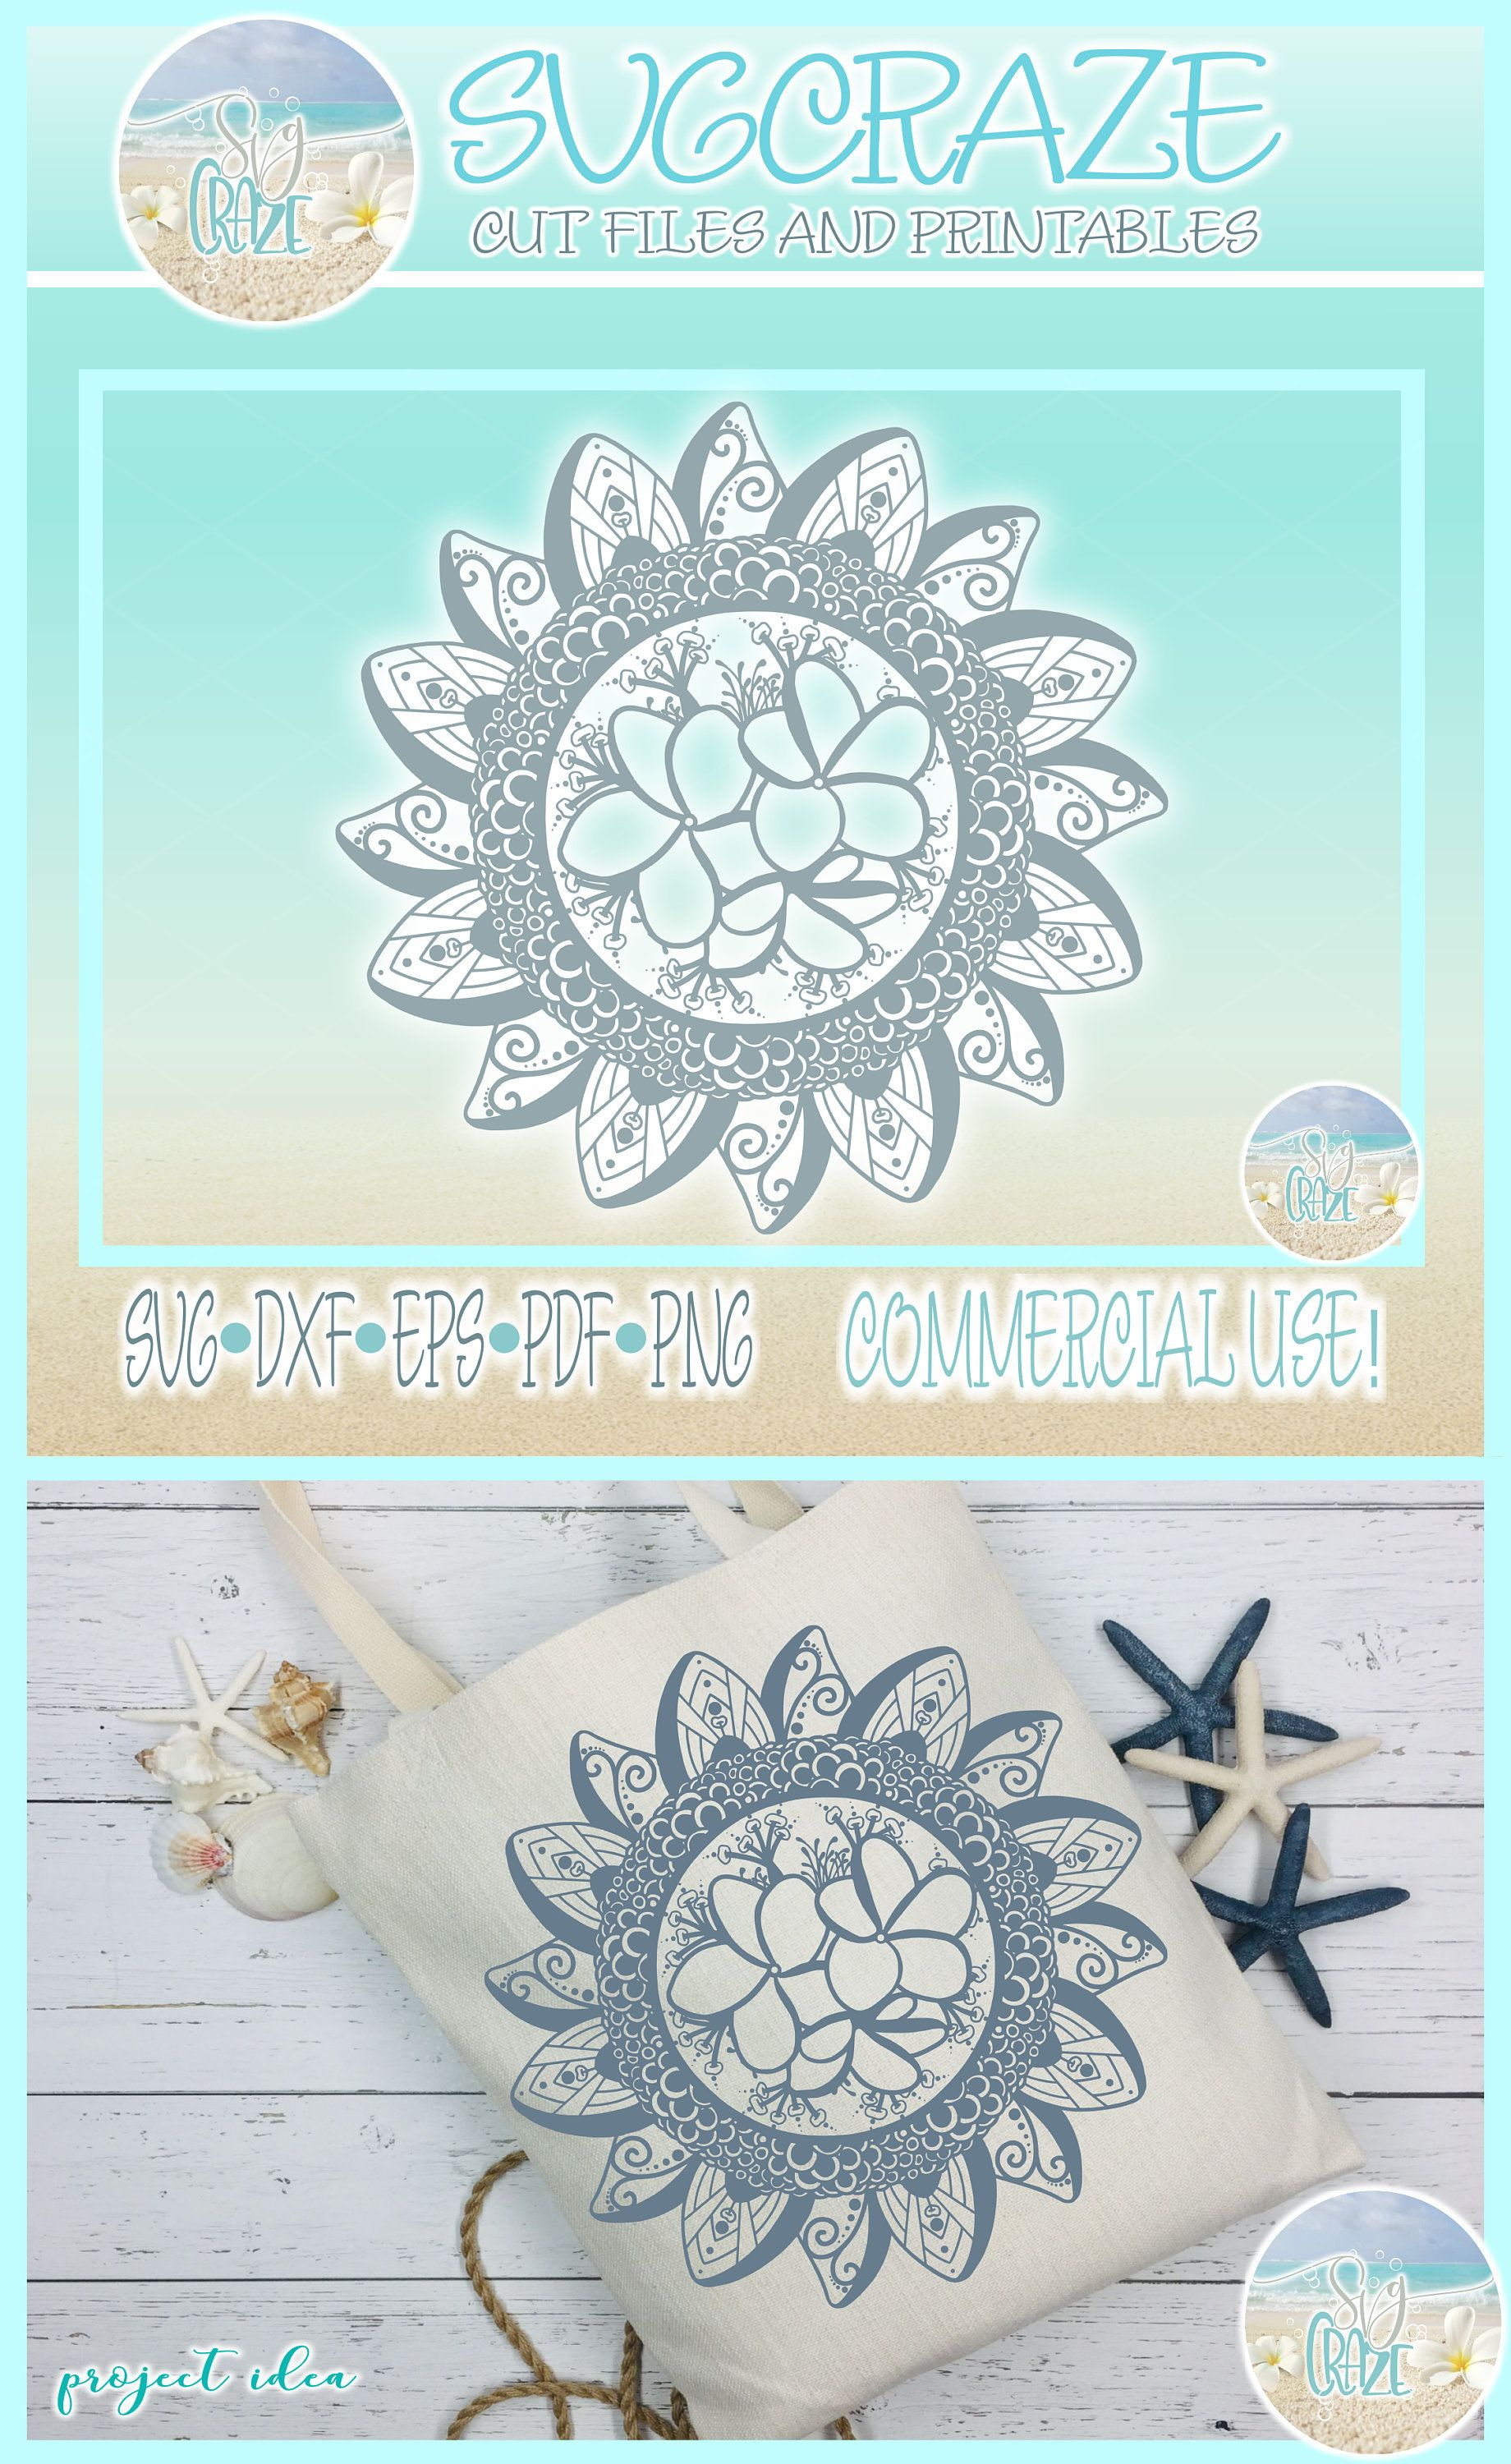 Dxf Eps Pdf Png Included Hand Drawn Mandala Zentangle SVG Files for Cricut Silhouette